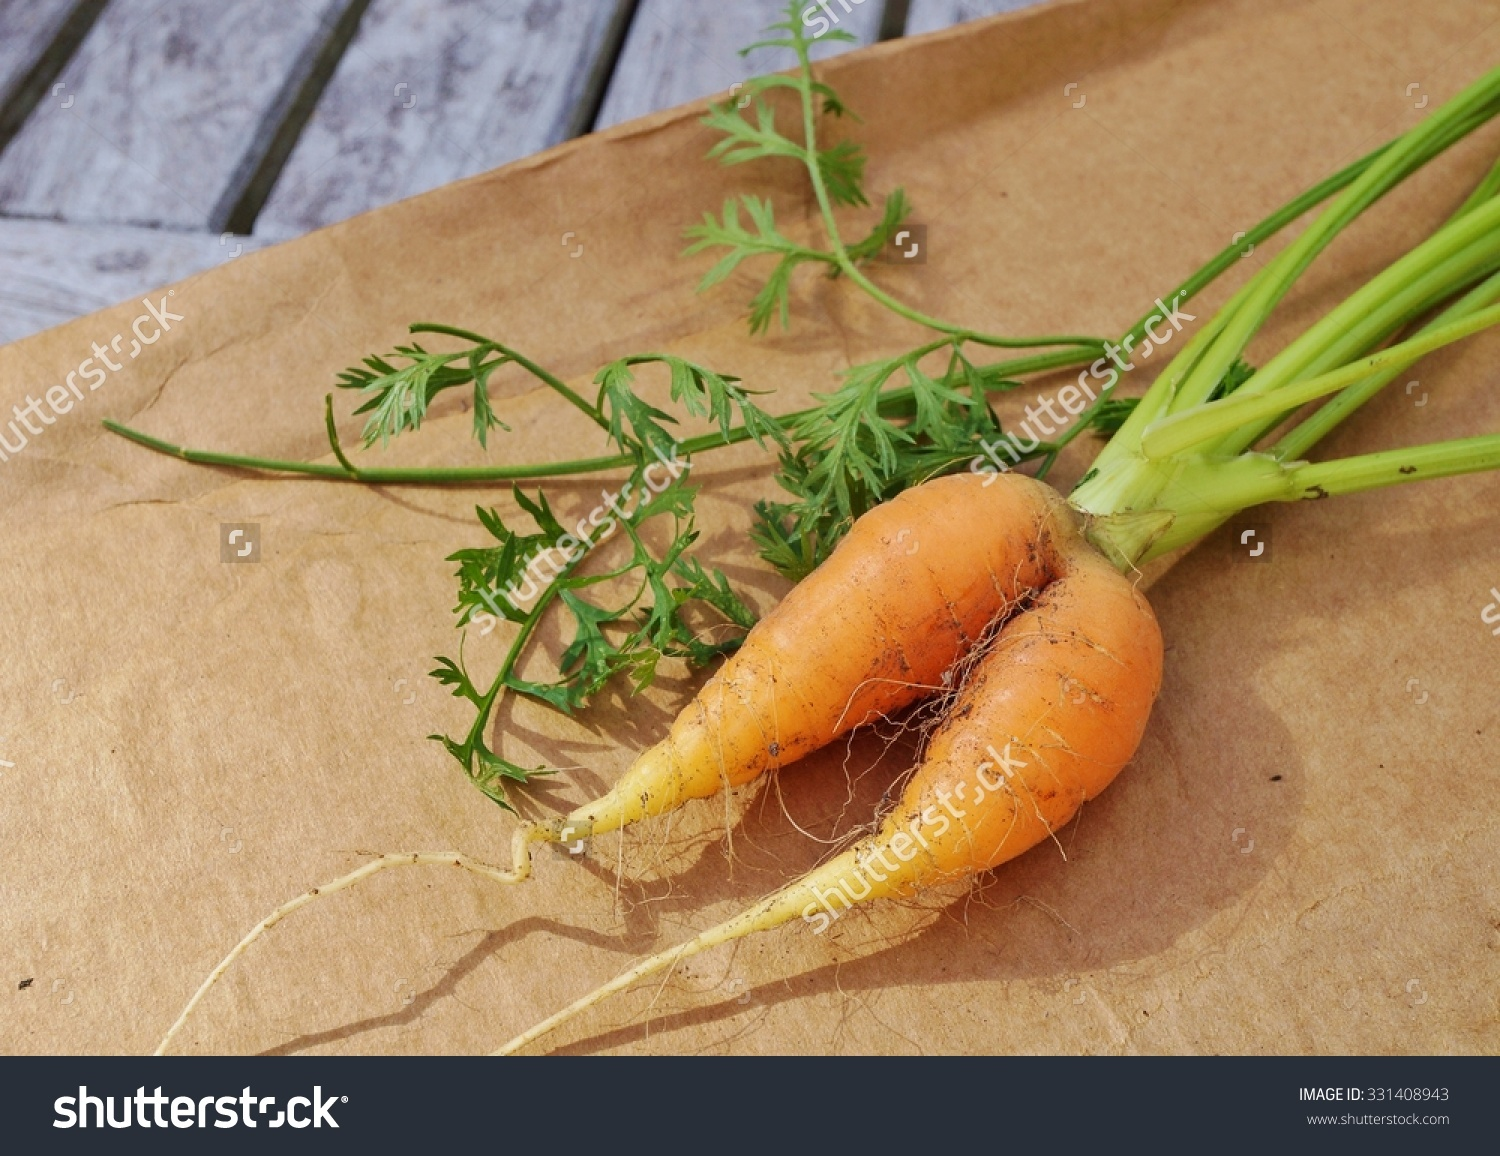 Siamese Twin Misshapen Carrot Stock Photo 331408943 : Shutterstock.